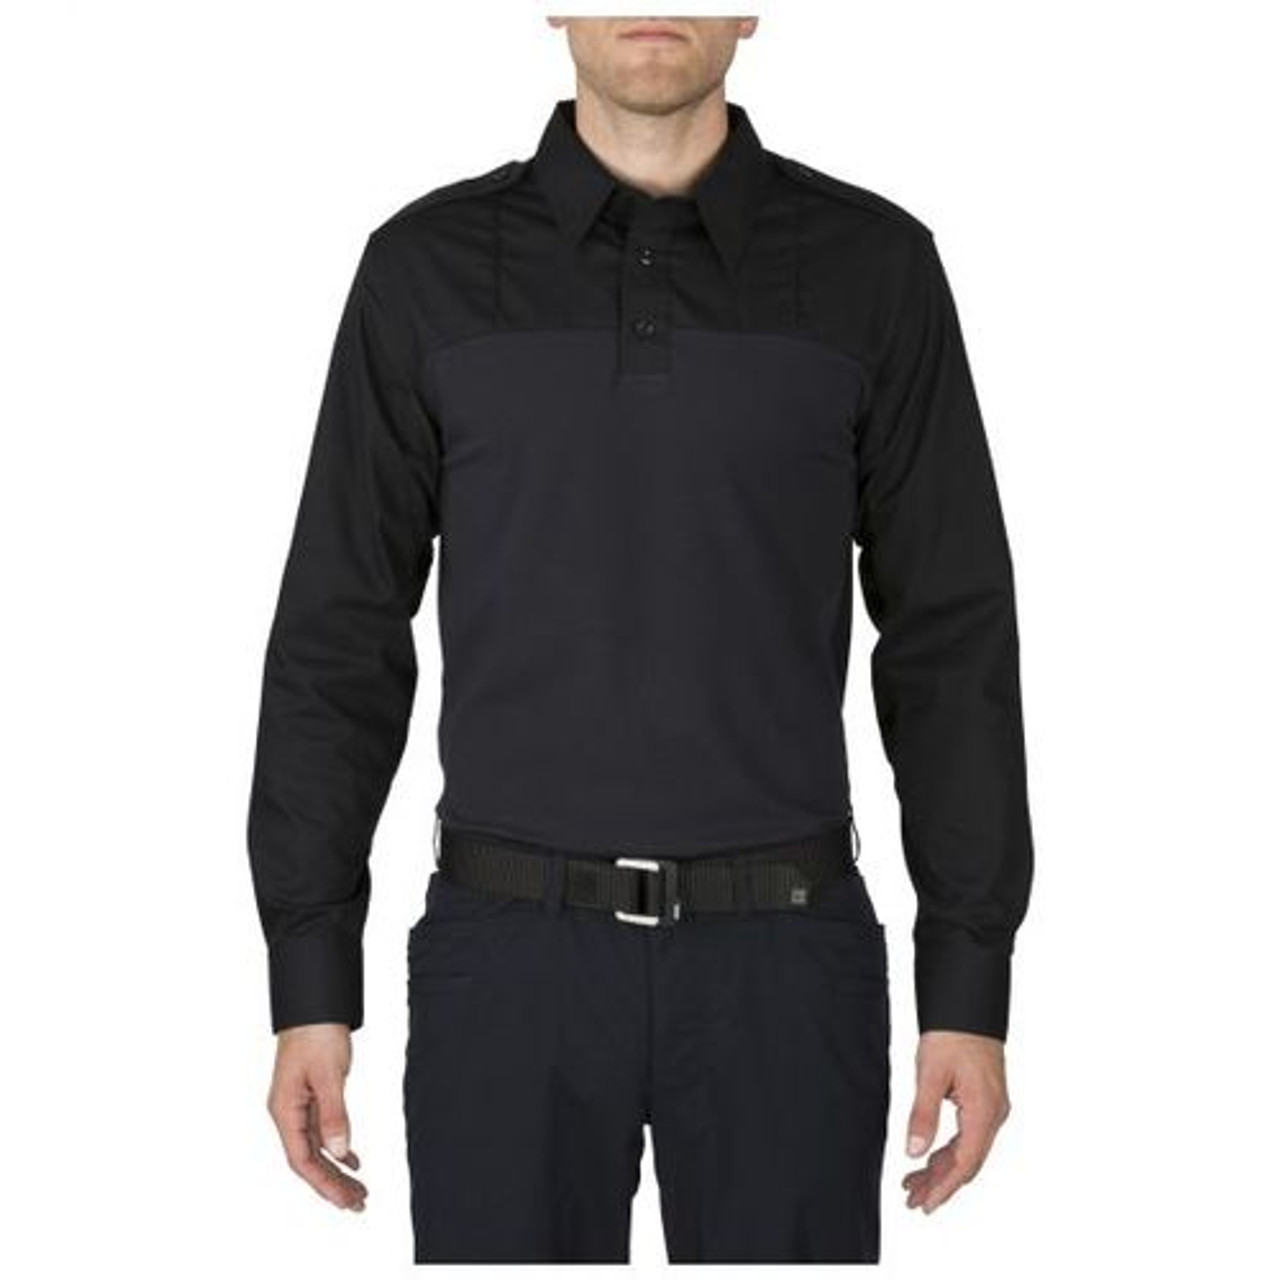 5.11 Tactical 72093 Taclite PDU Rapid Casual/Uniform Long Sleeve Polo Shirt, Polyester/Cotton available in Navy